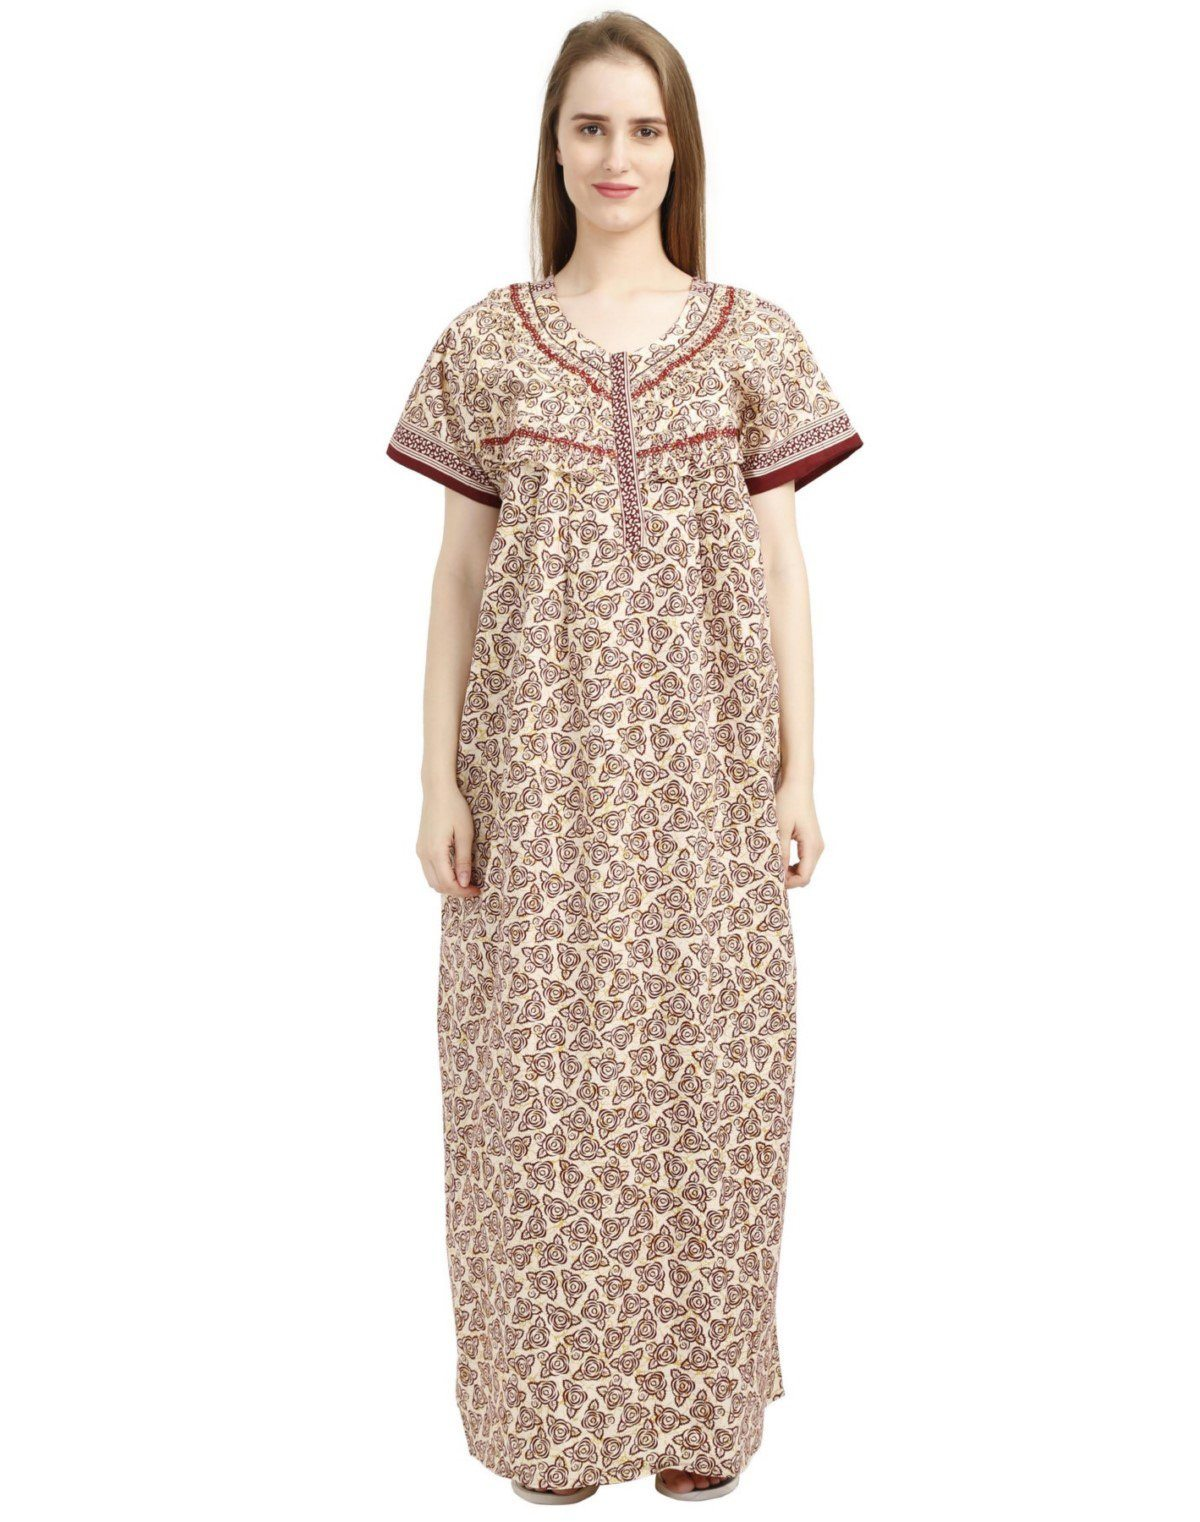 723a78e5380 Maternity Feeding Nighties   Nursing Nightwear Online India - Nighty ...